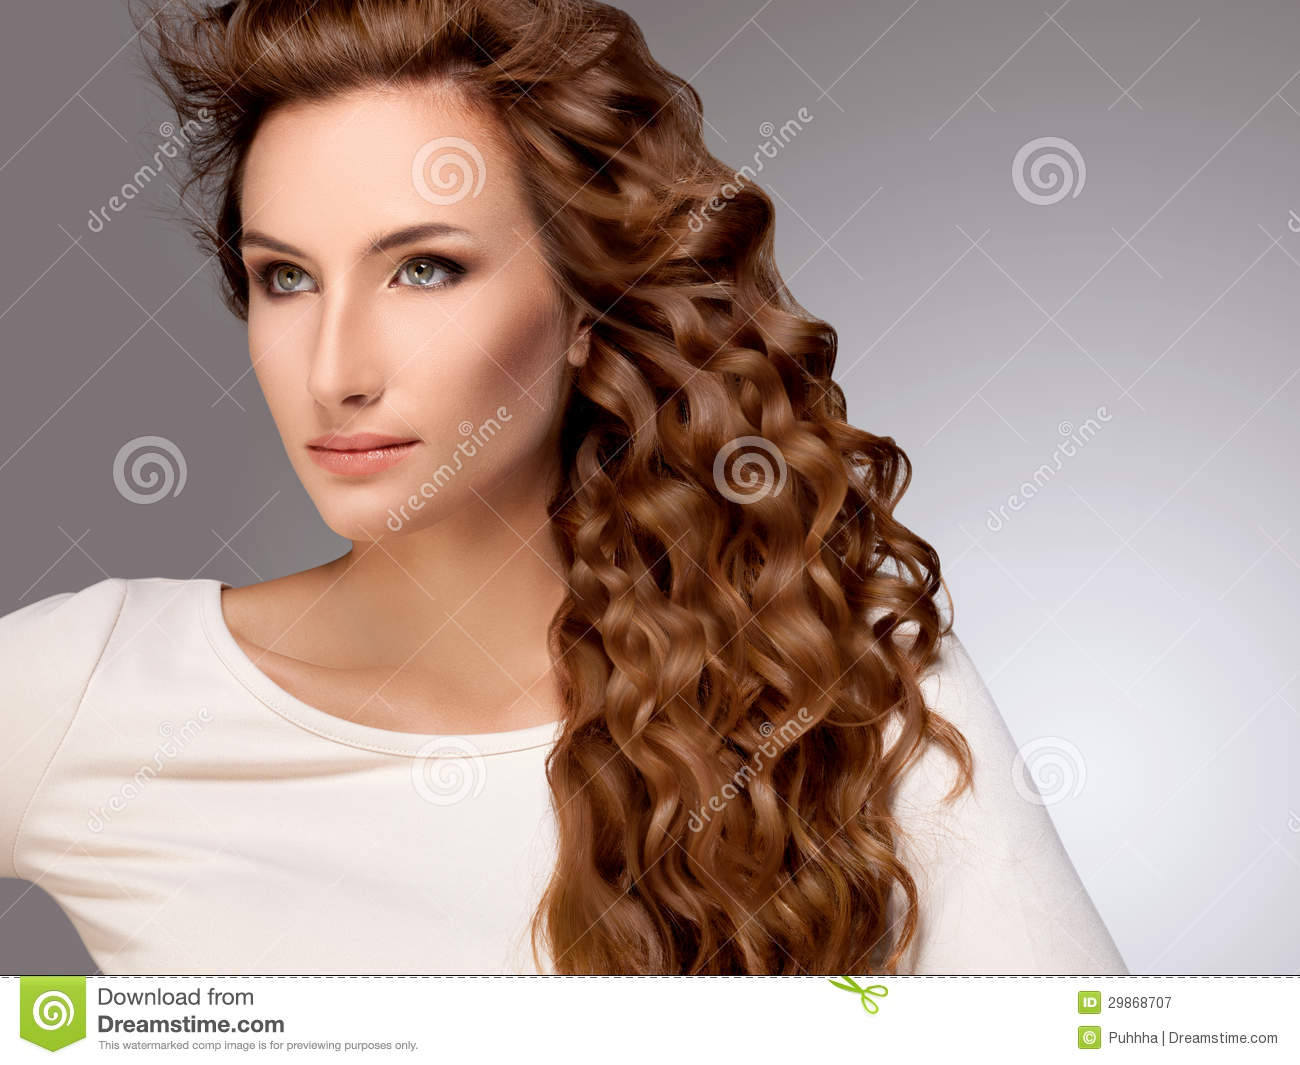 beautiful woman with red curly hair stock image - image: 29868707